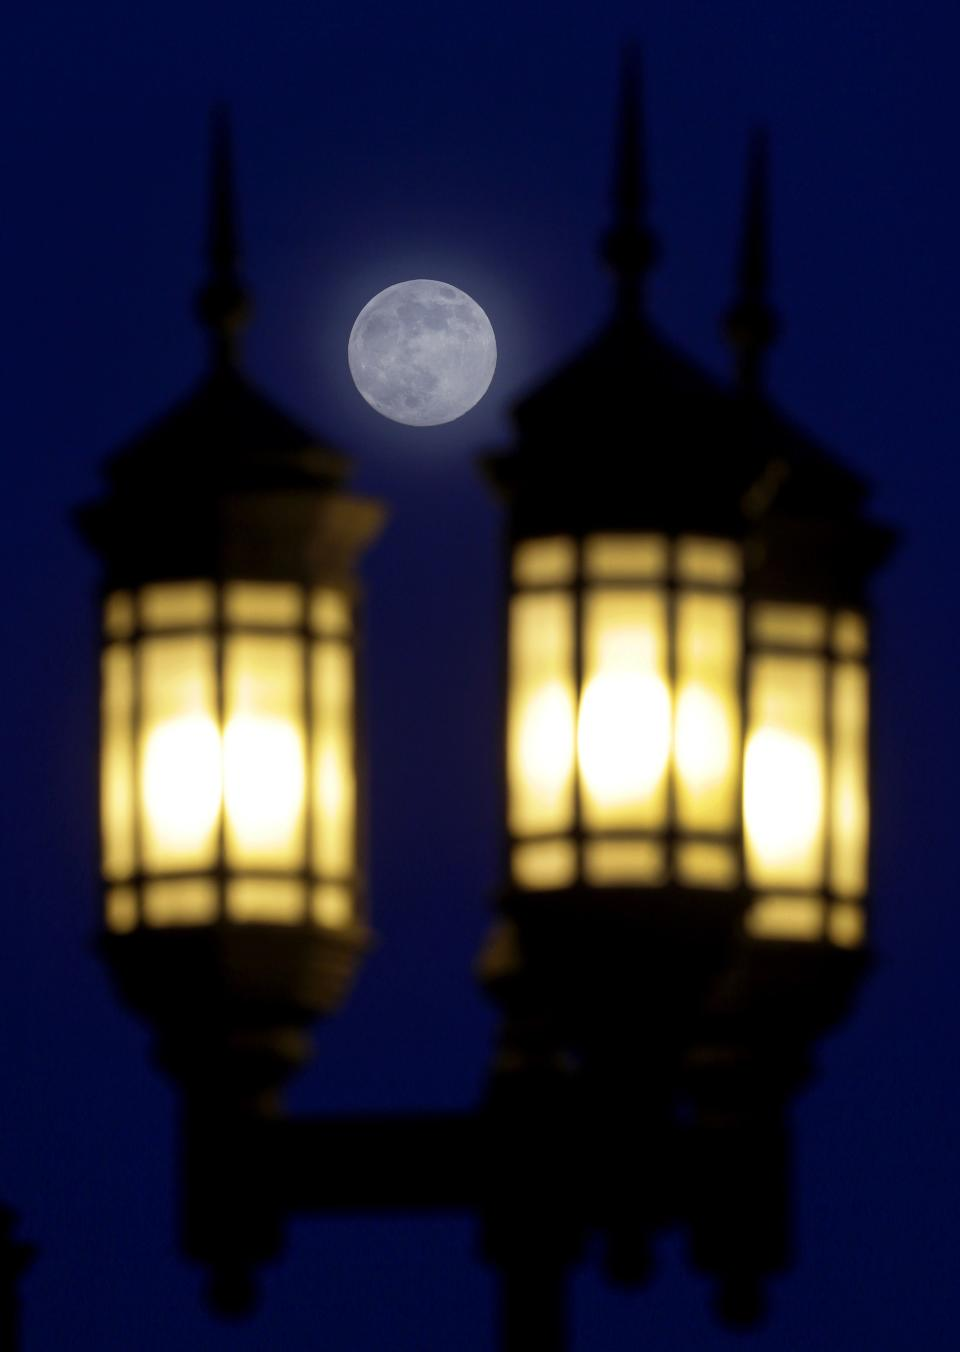 A full moon rises through a hazy sky over street lamps, Saturday, June 22, 2013, in Baltimore. The moon, which will reach its full stage on Sunday, is expected to be 13.5 percent closer to earth during a phenomenon known as supermoon. (AP Photo/Patrick Semansky)